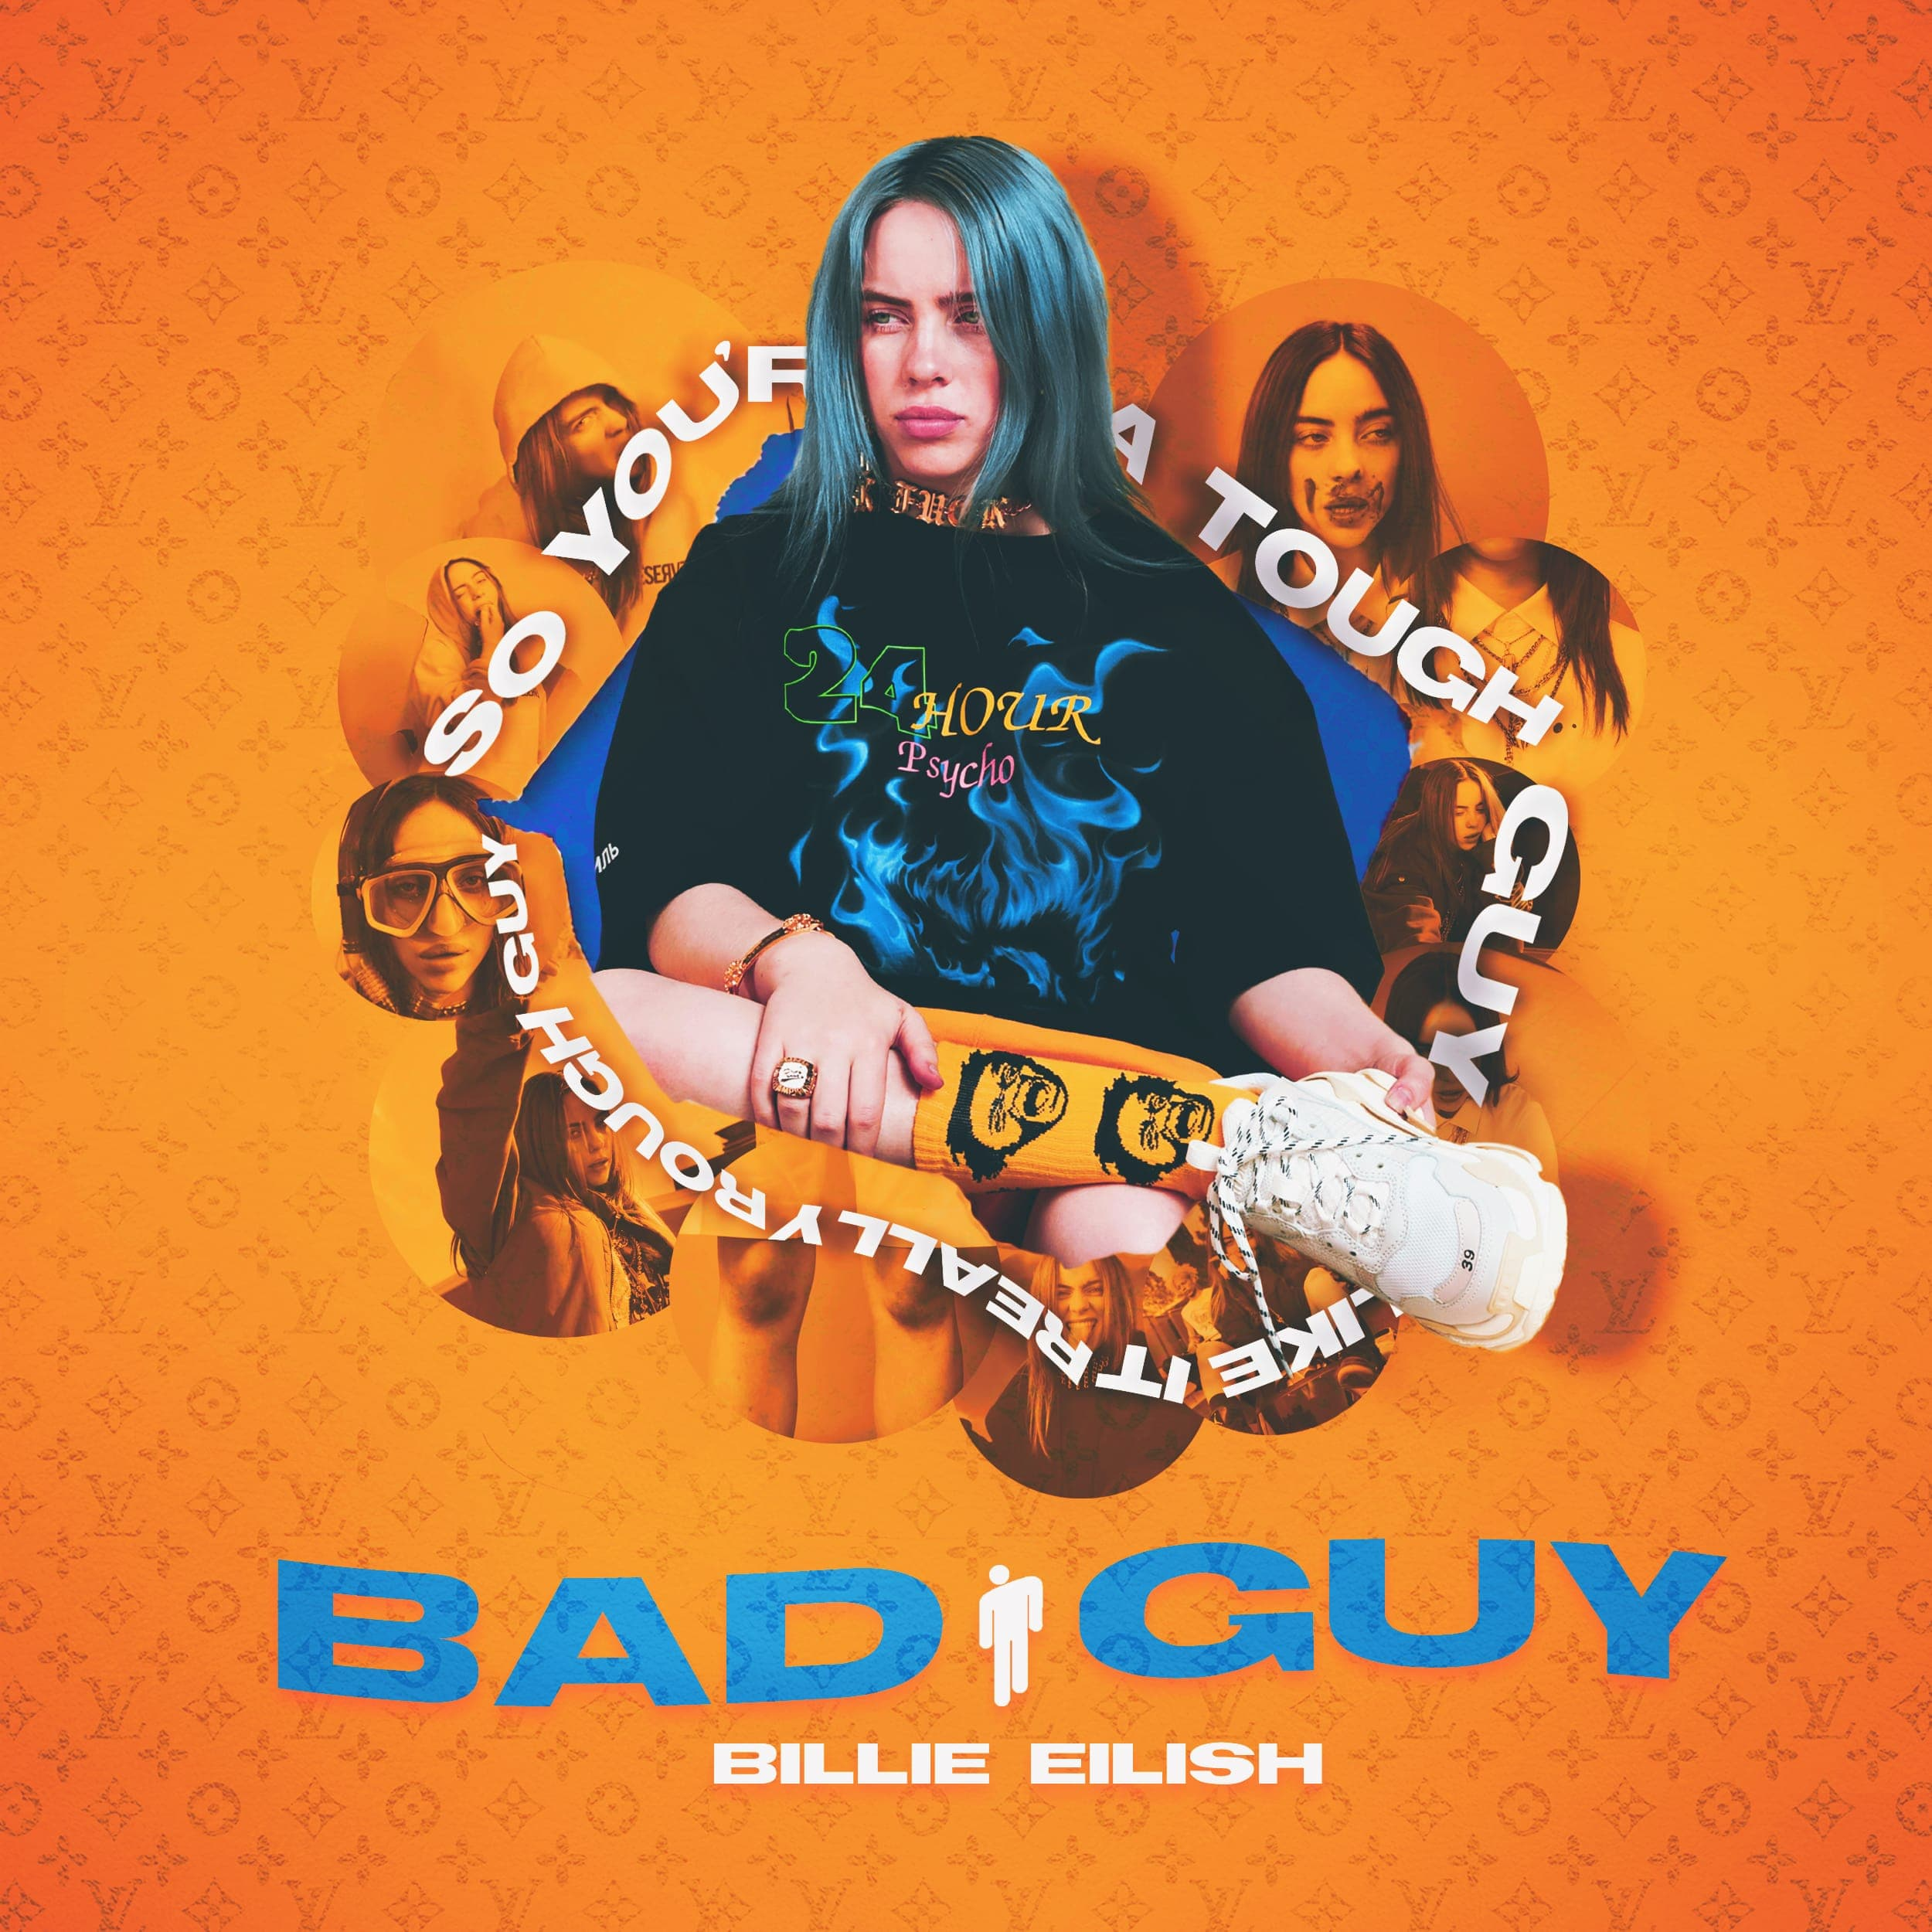 Bad guy - Billie Eilish & Justin Bieber